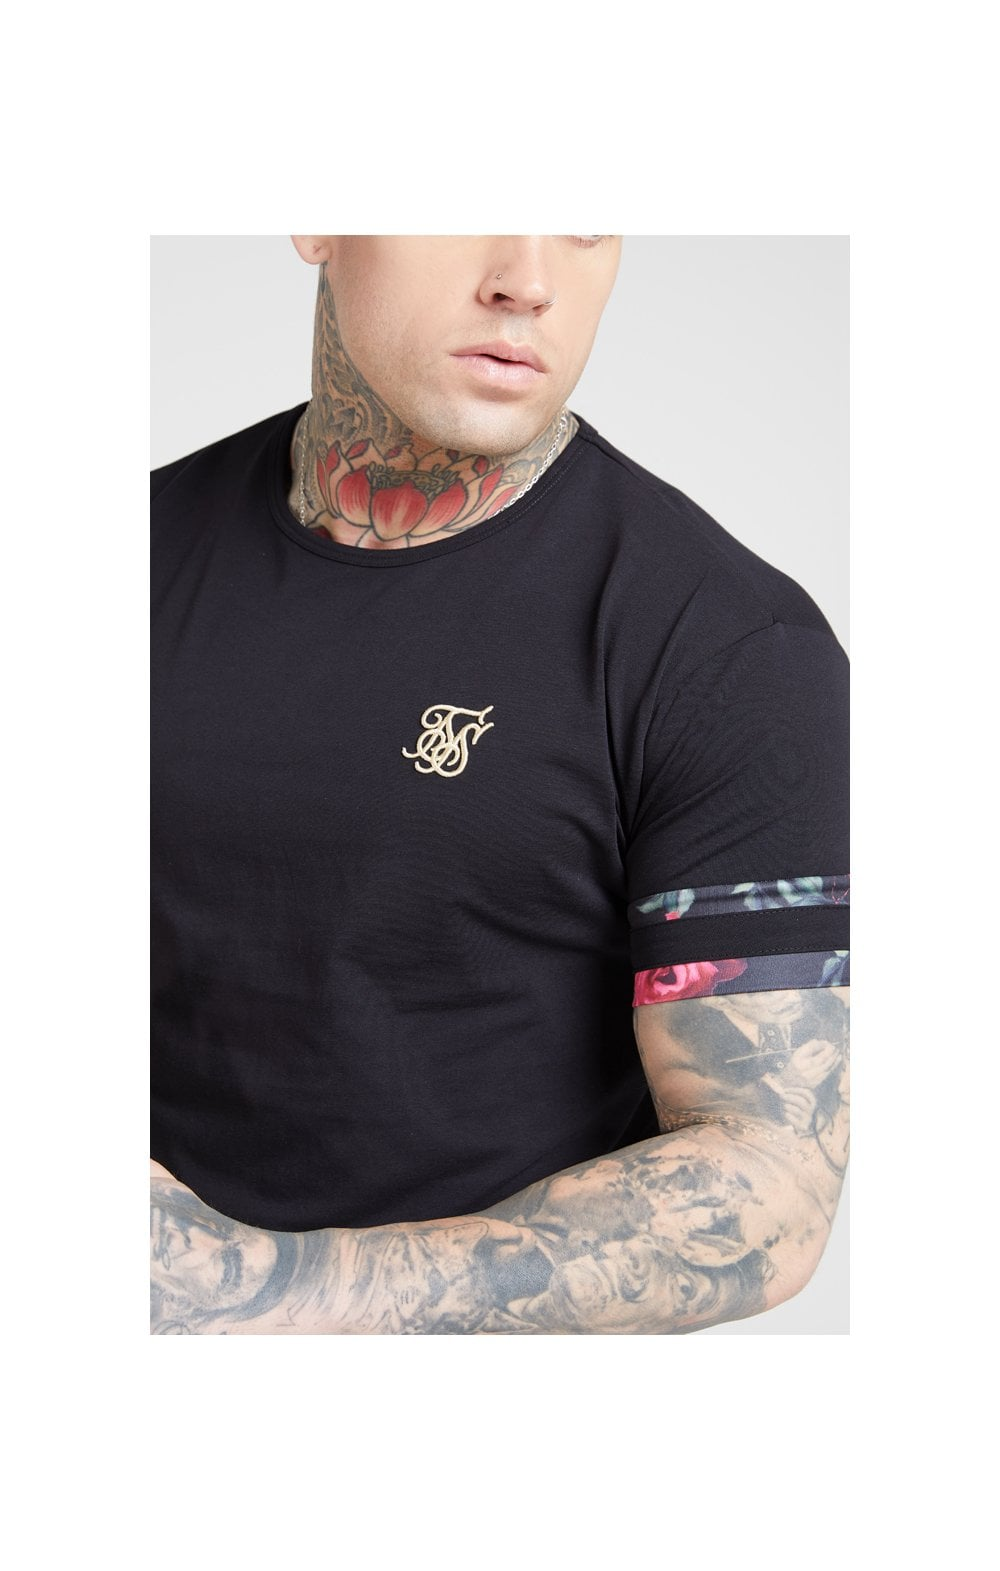 SikSilk S/S Tournament Tee – Black & Oil Paint